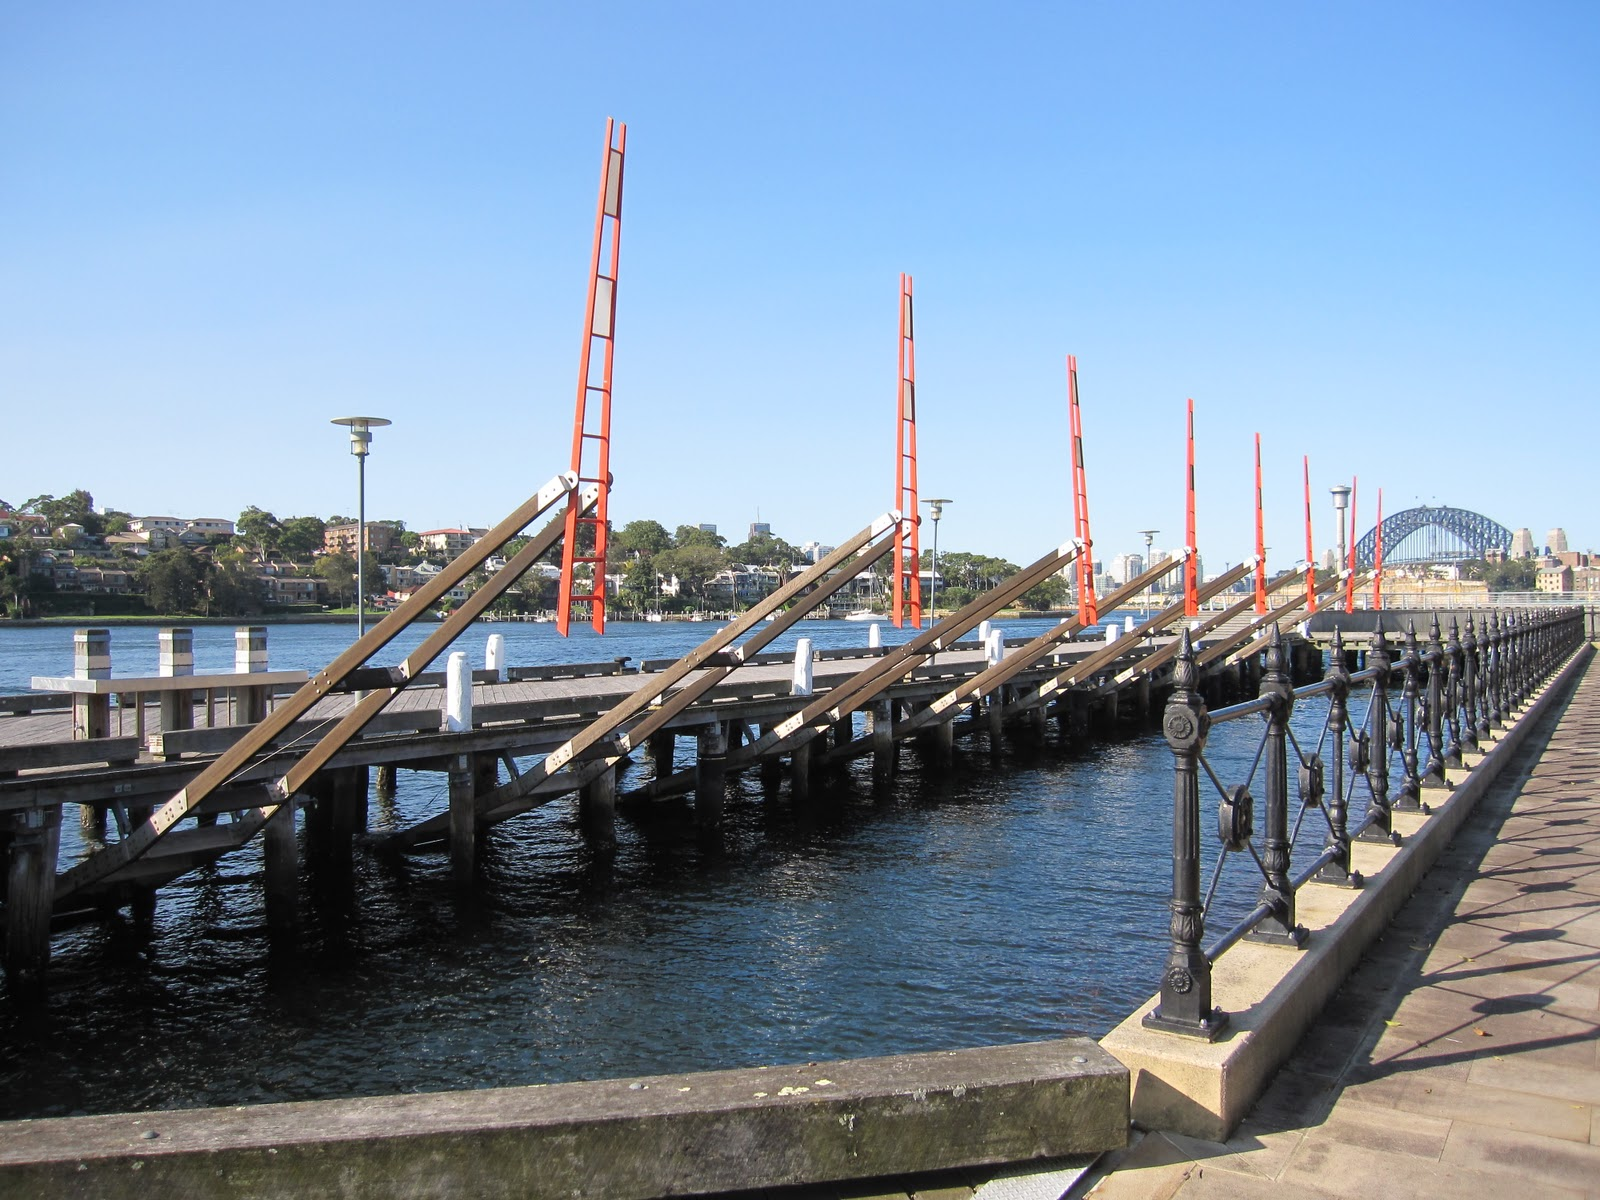 Sydney city and suburbs pyrmont tied to tide tied to tide is a kinetic artwork located along the boardwalk on the waterfront of pyrmont point park in the inner west suburb of pyrmont nvjuhfo Gallery